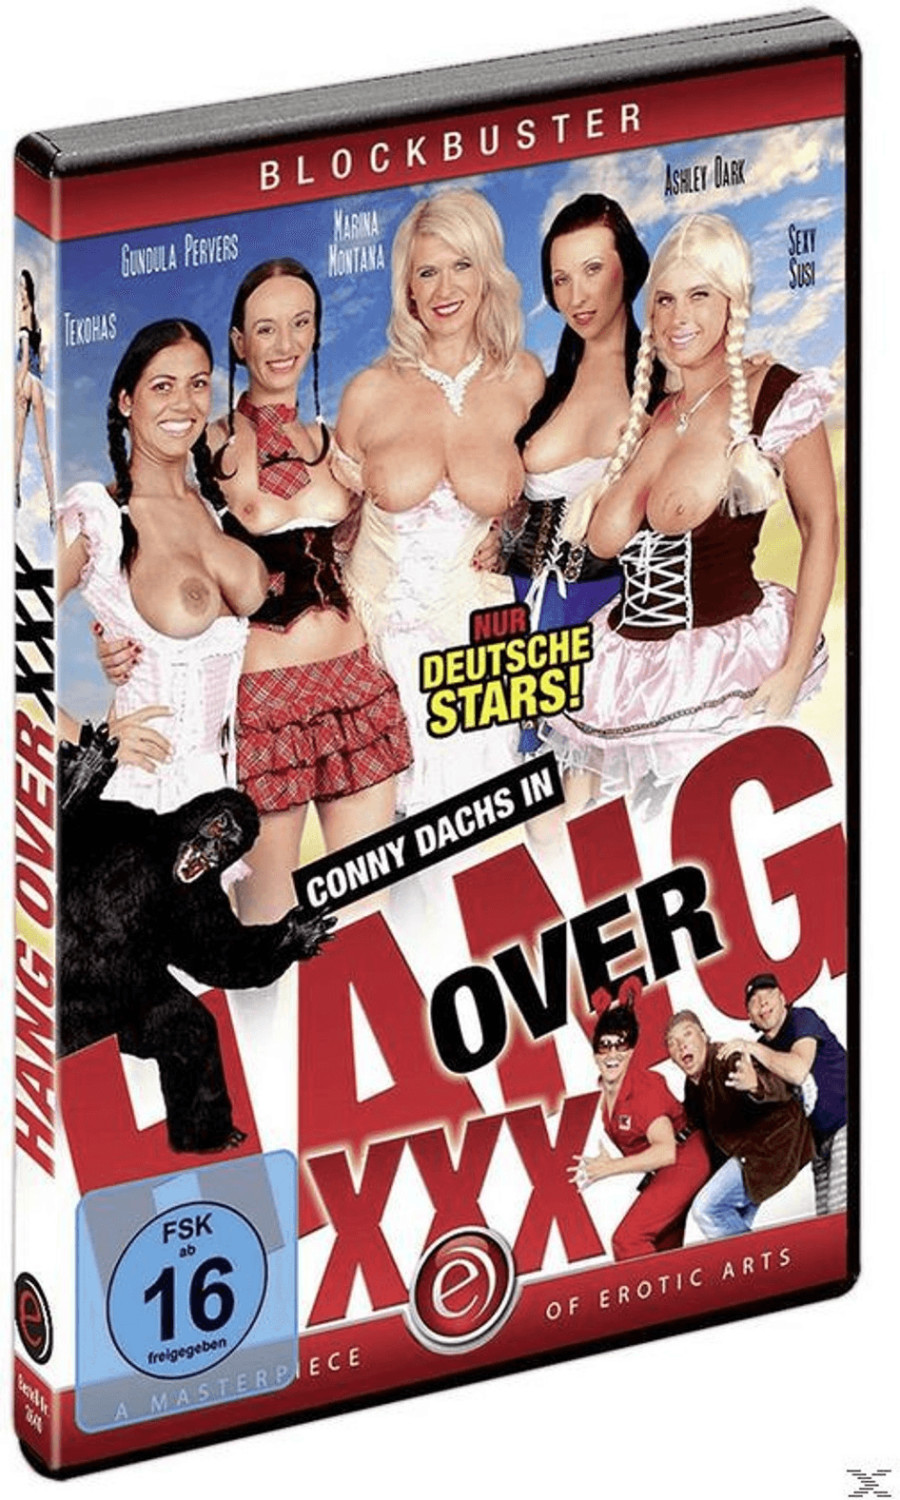 Hang Over XXX [DVD]